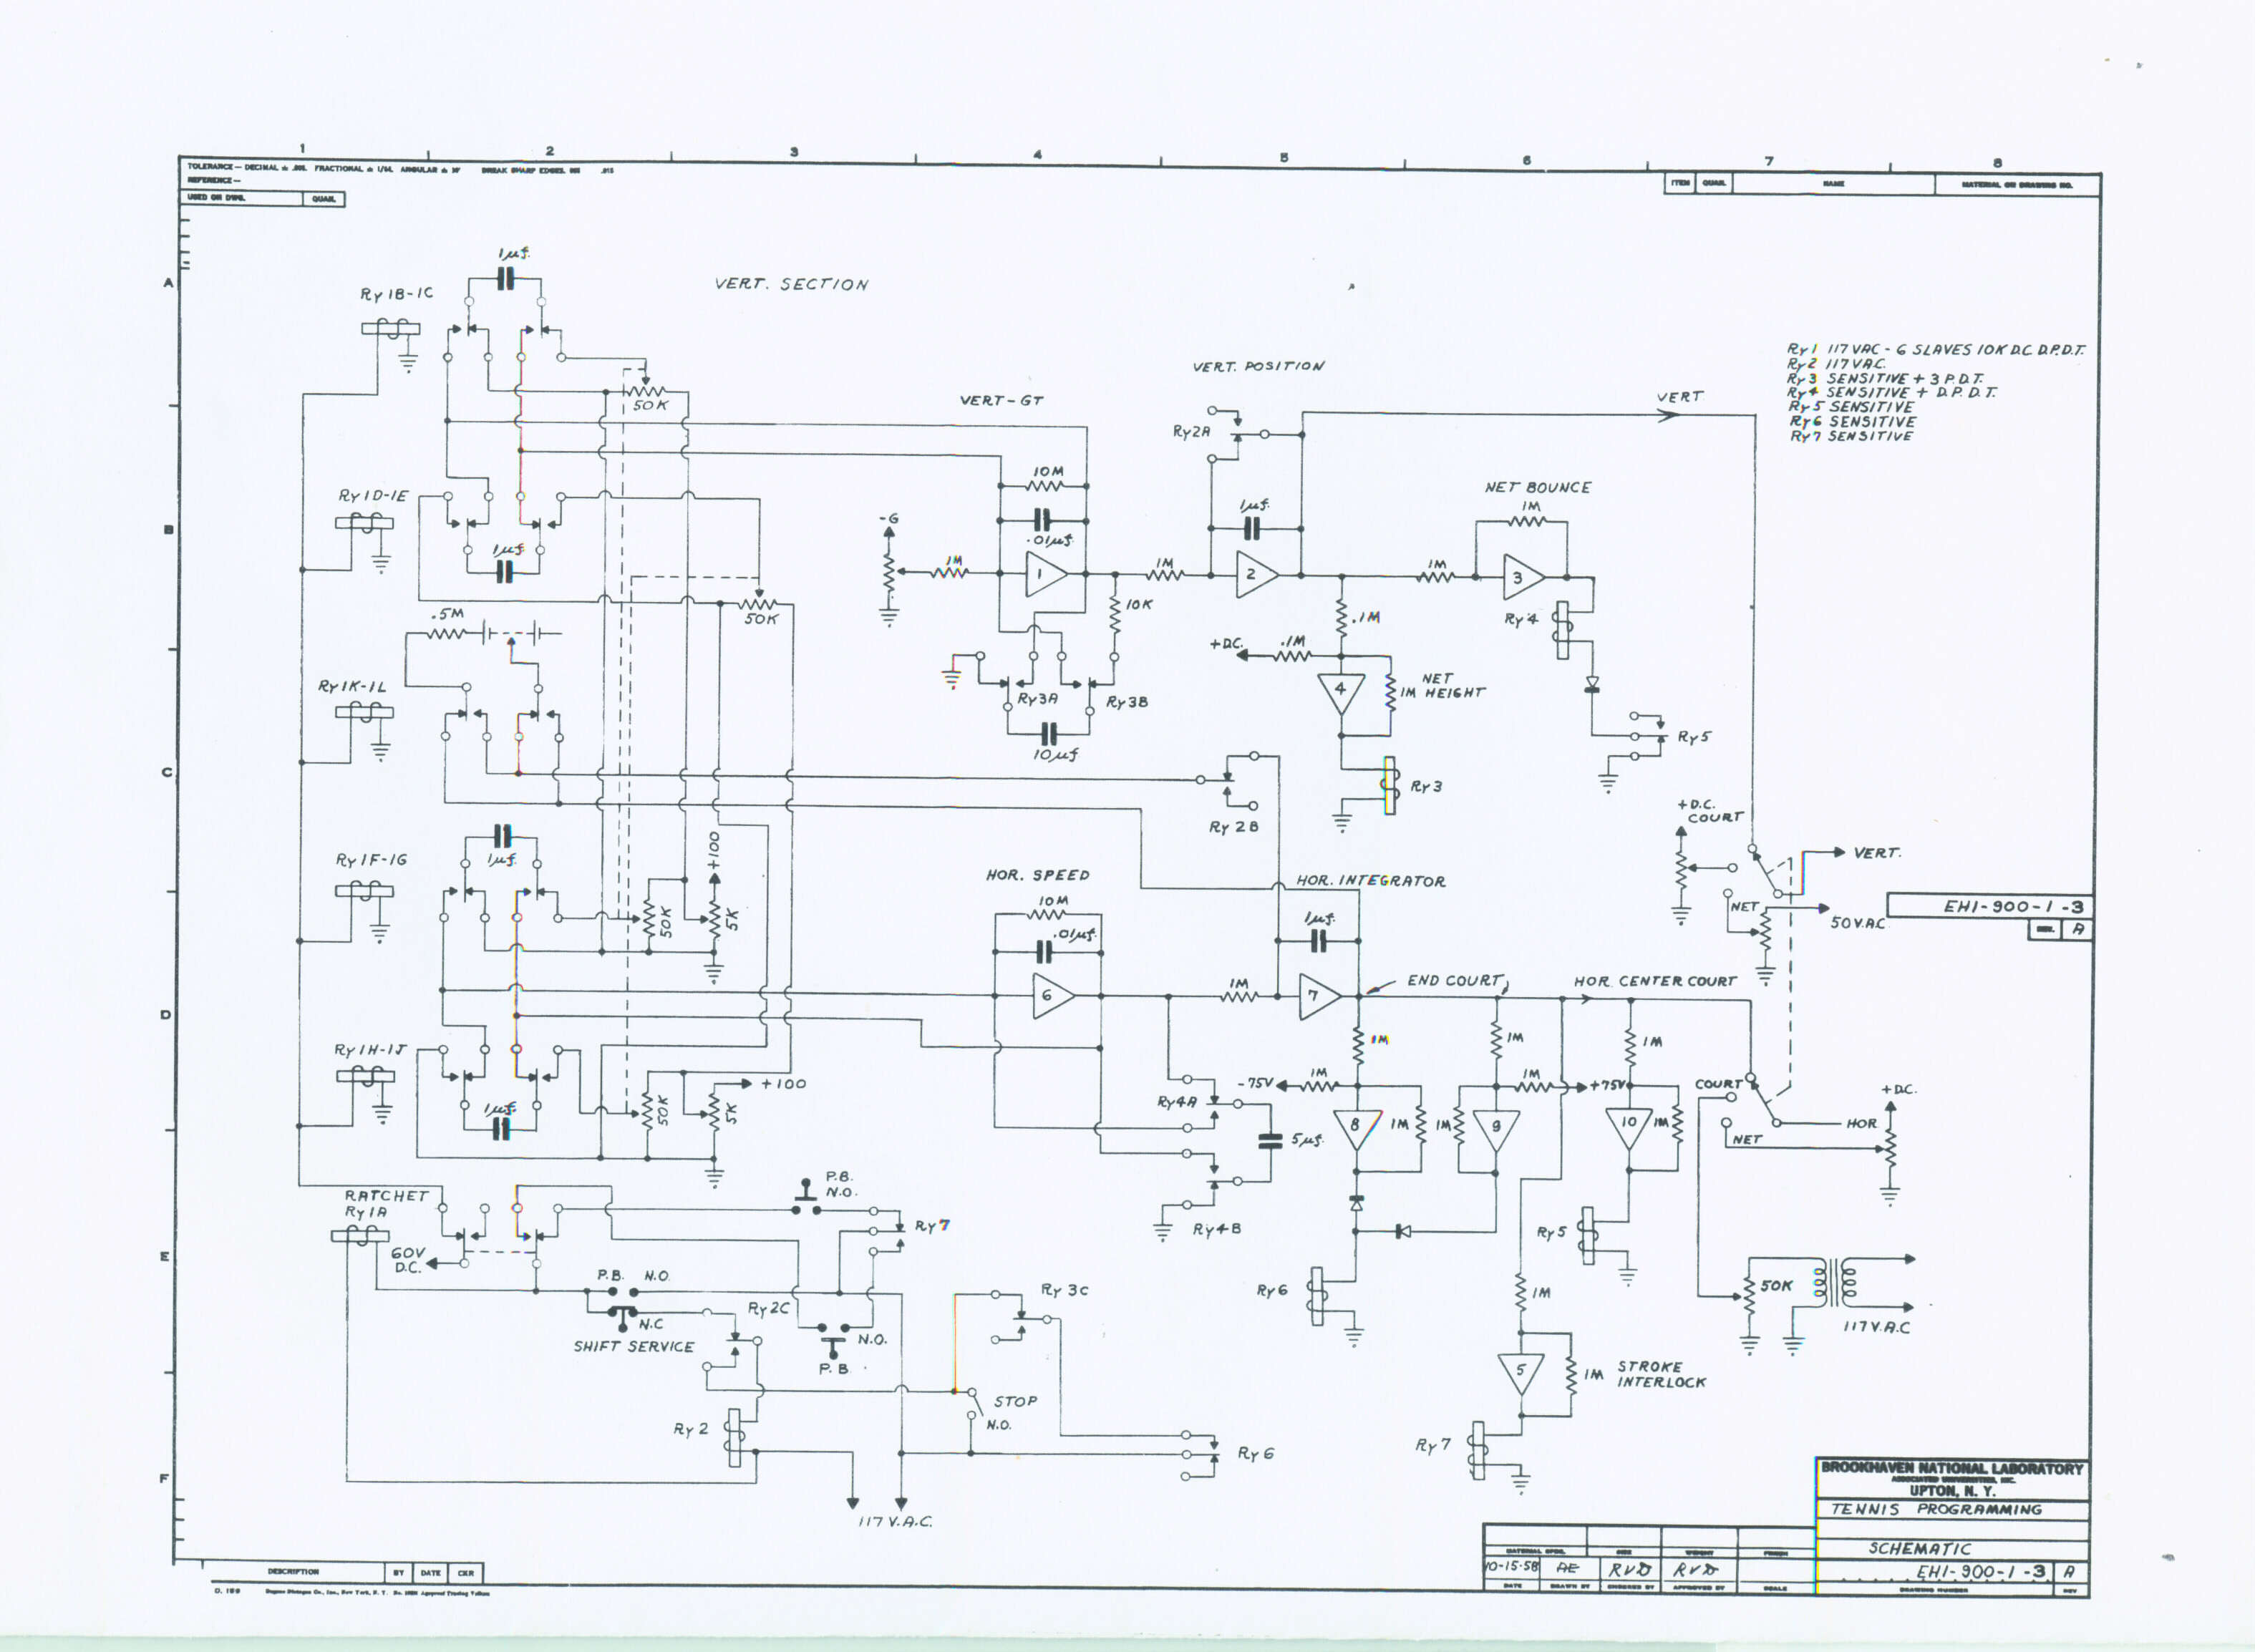 Tennis_For_Two_Schematic_1.jpg